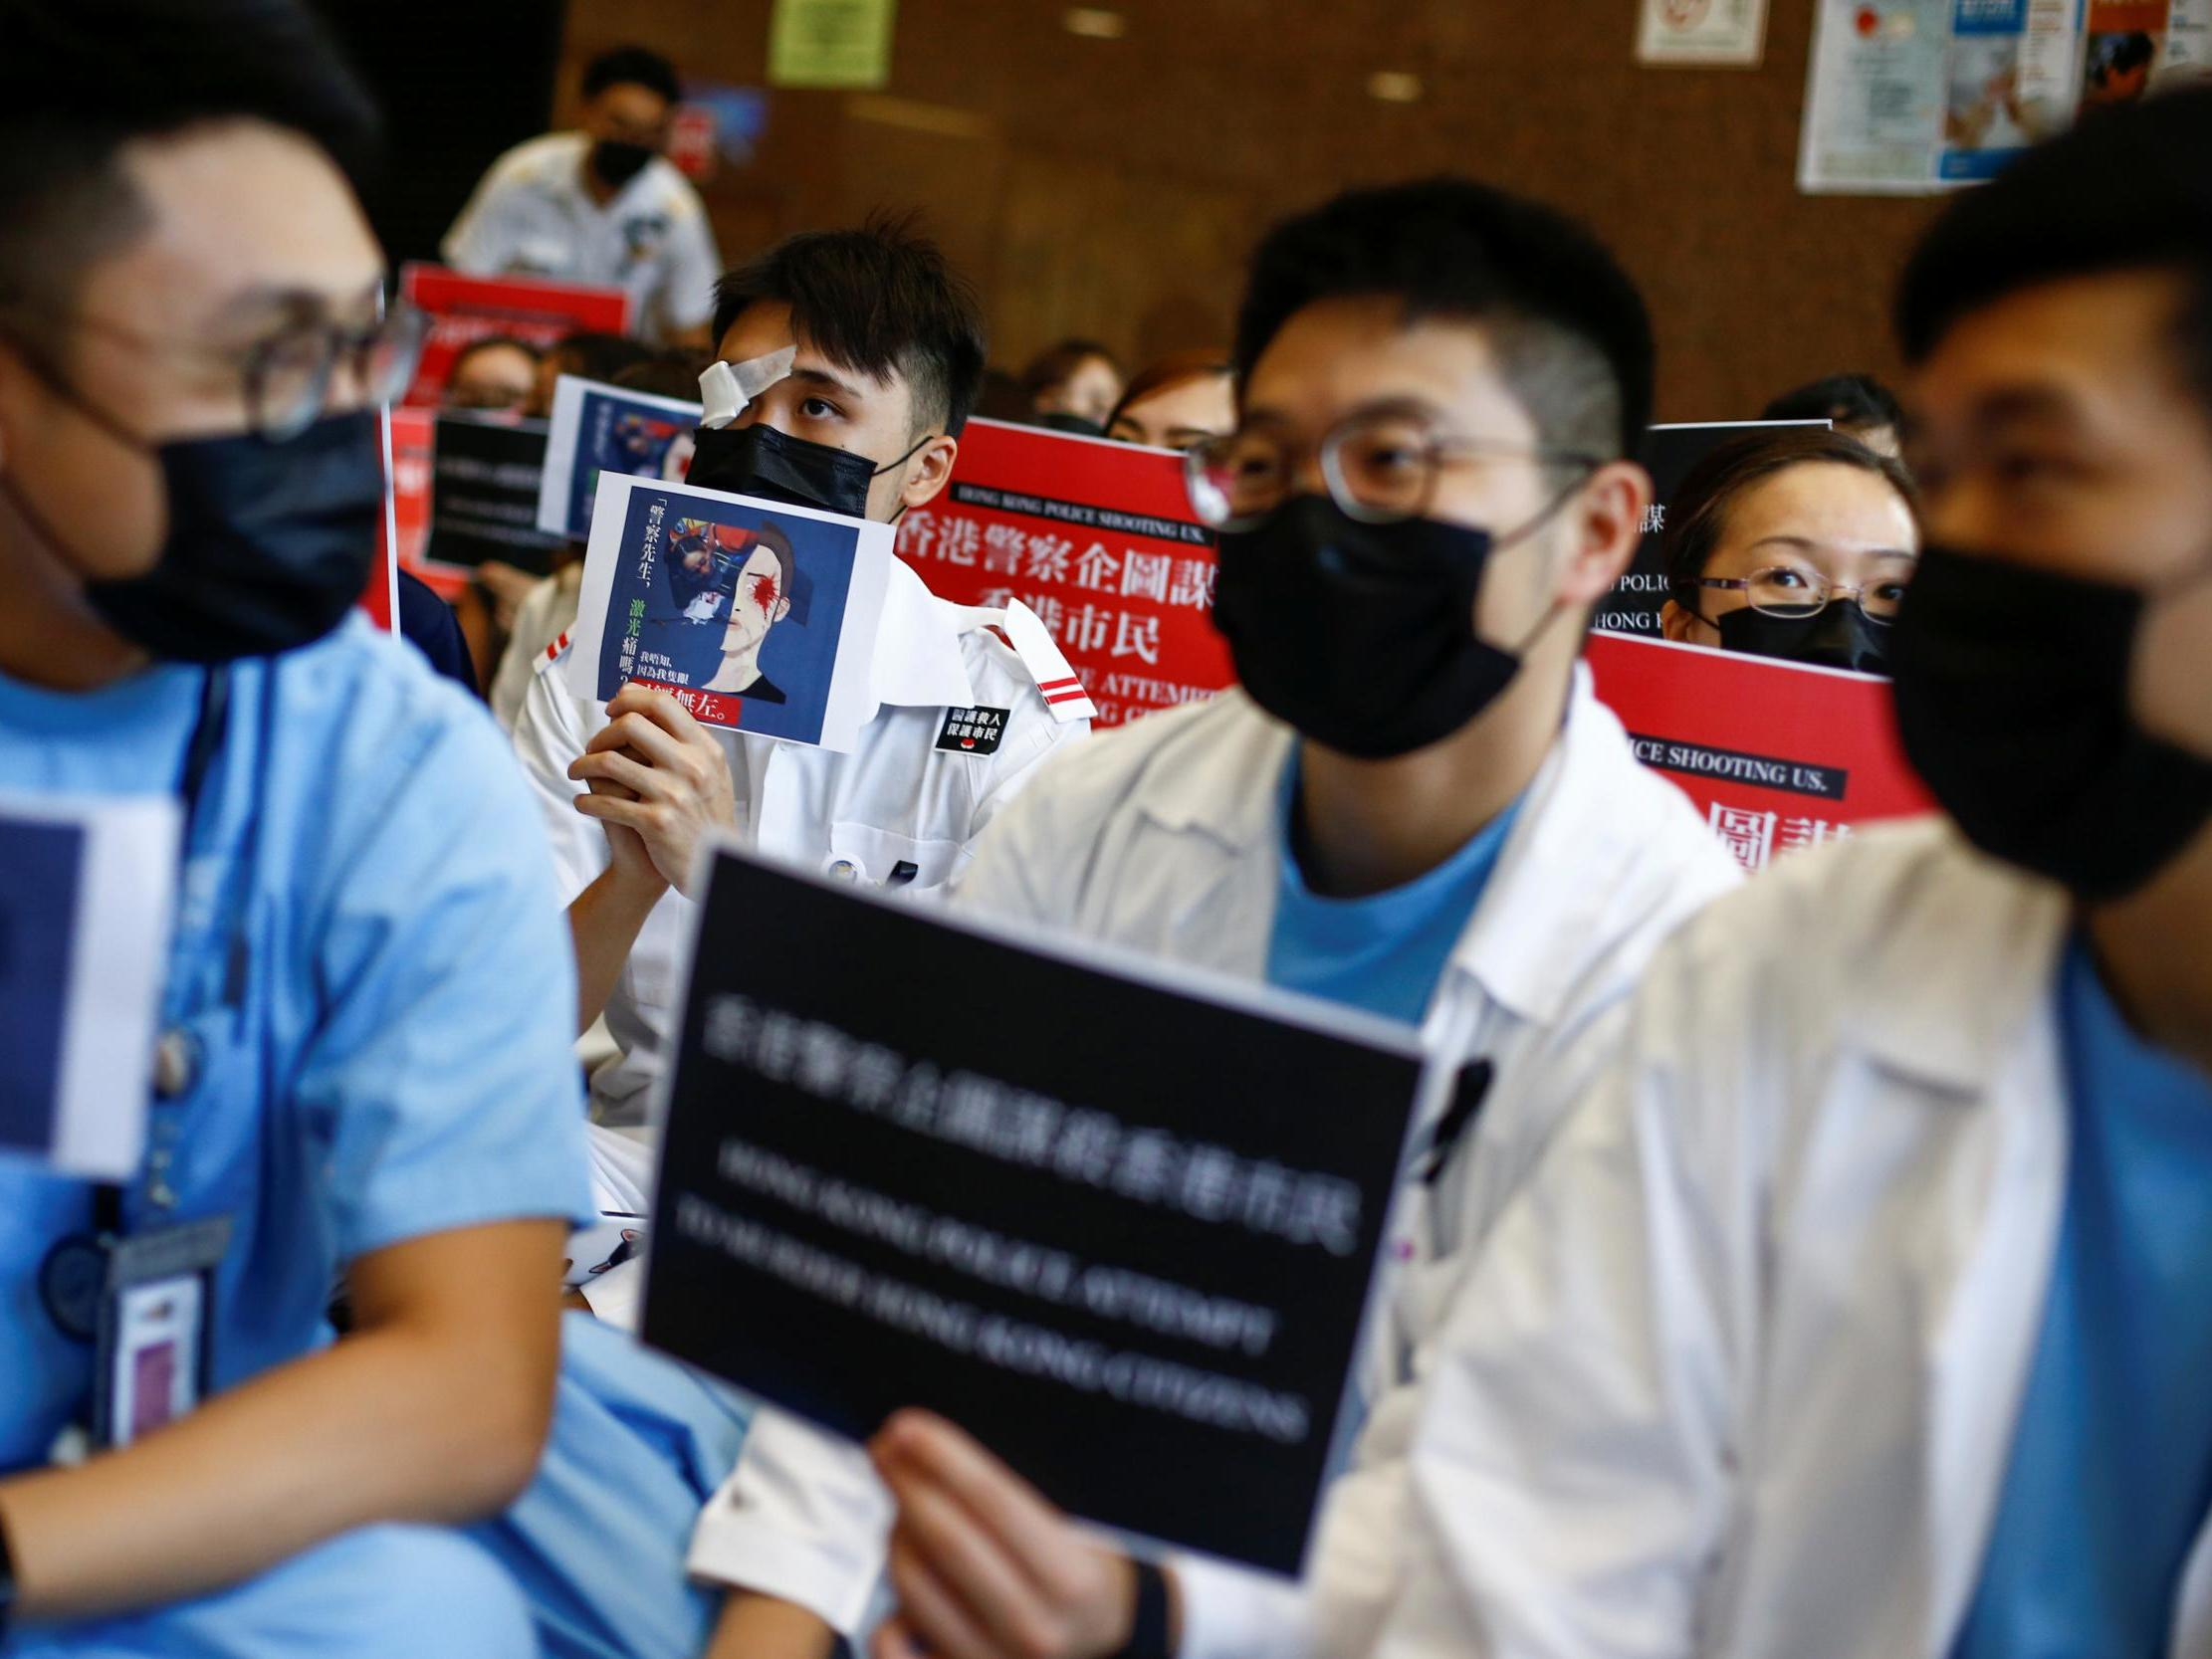 Hong Kong's trauma is deep – but by standing with the people, medical workers are providing social healing too